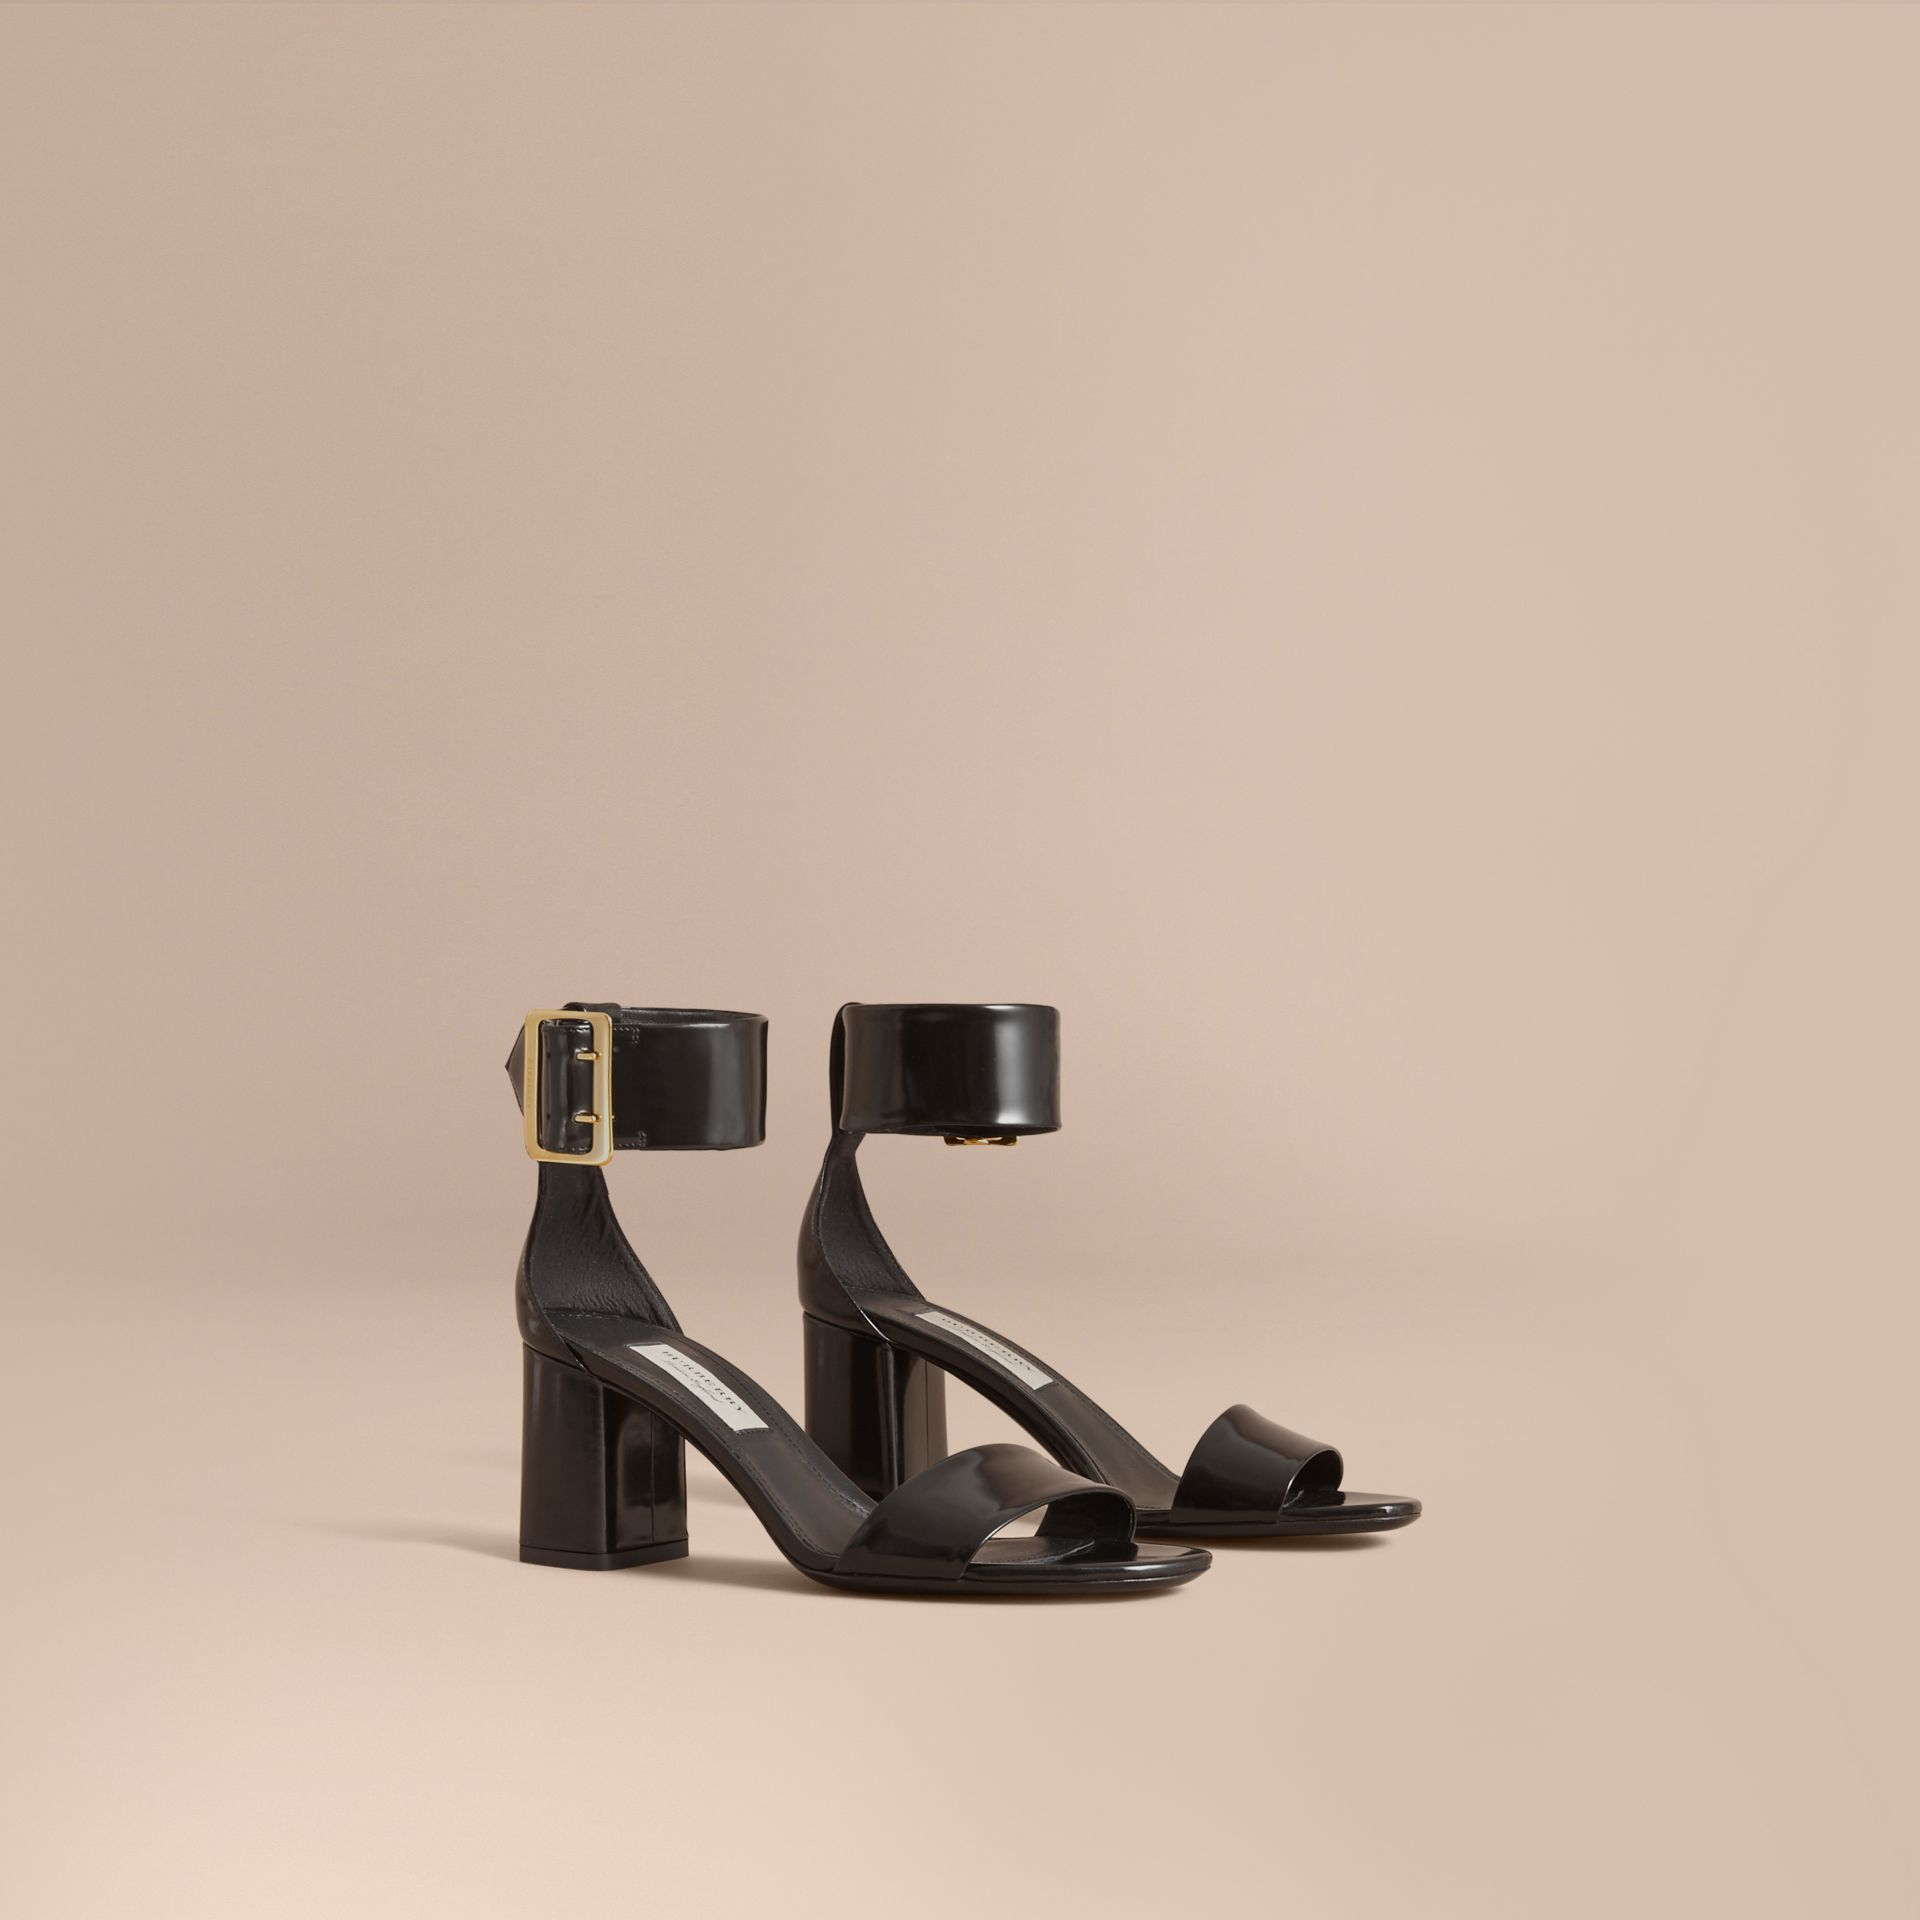 Buckle Detail Patent Leather Sandals in Black - Women | Burberry Singapore - gallery image 1